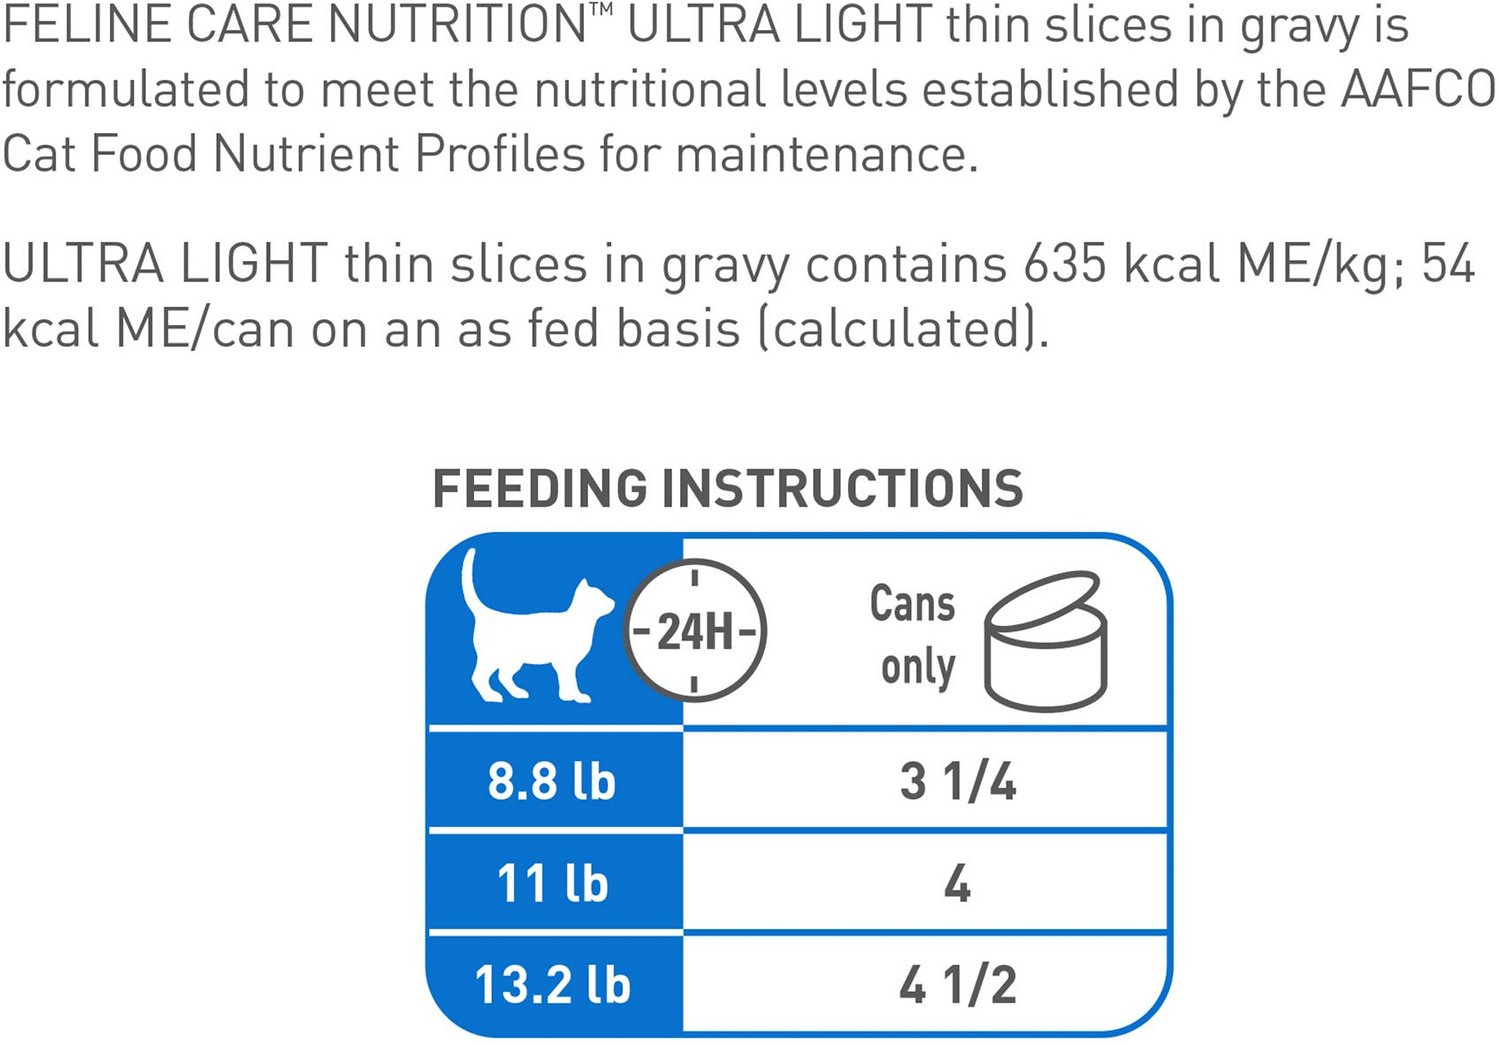 Royal Canin Ultra Light Thin Slices In Gravy Canned Cat